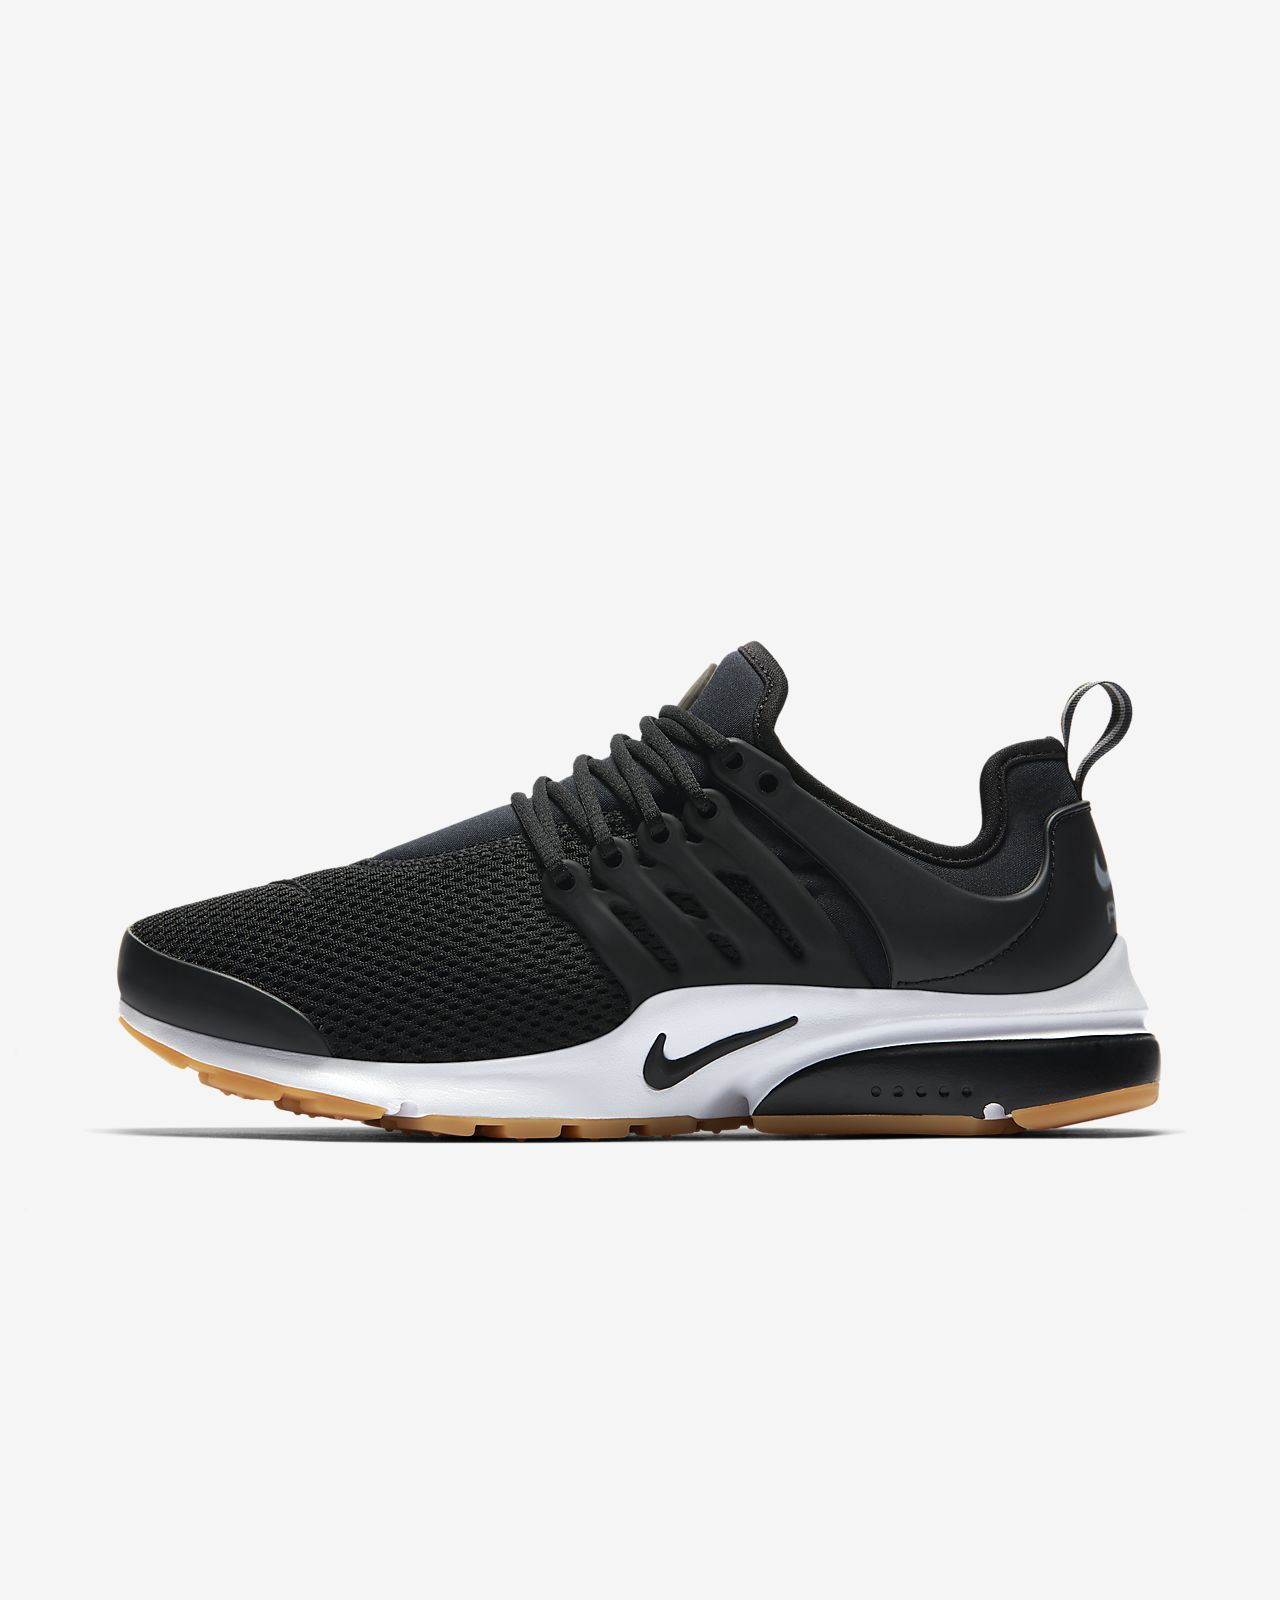 watch d7135 b8222 ... Nike Air Presto Women s Shoe